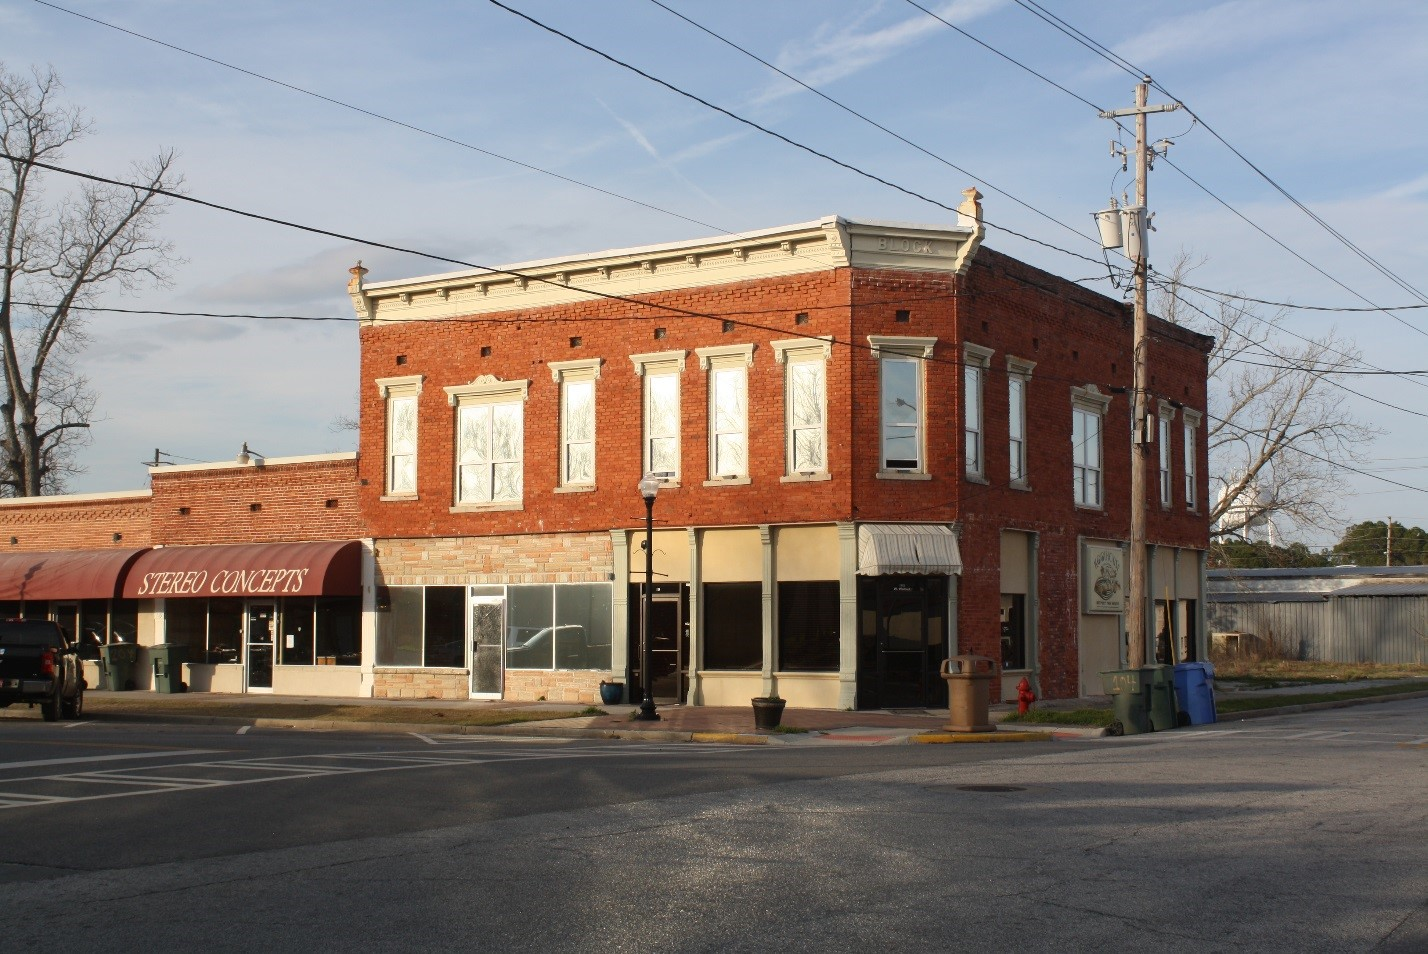 The Tuten Block Building had the Cohen Mercantile Store that was owned by Jesup Mayor S. E. Cohen.